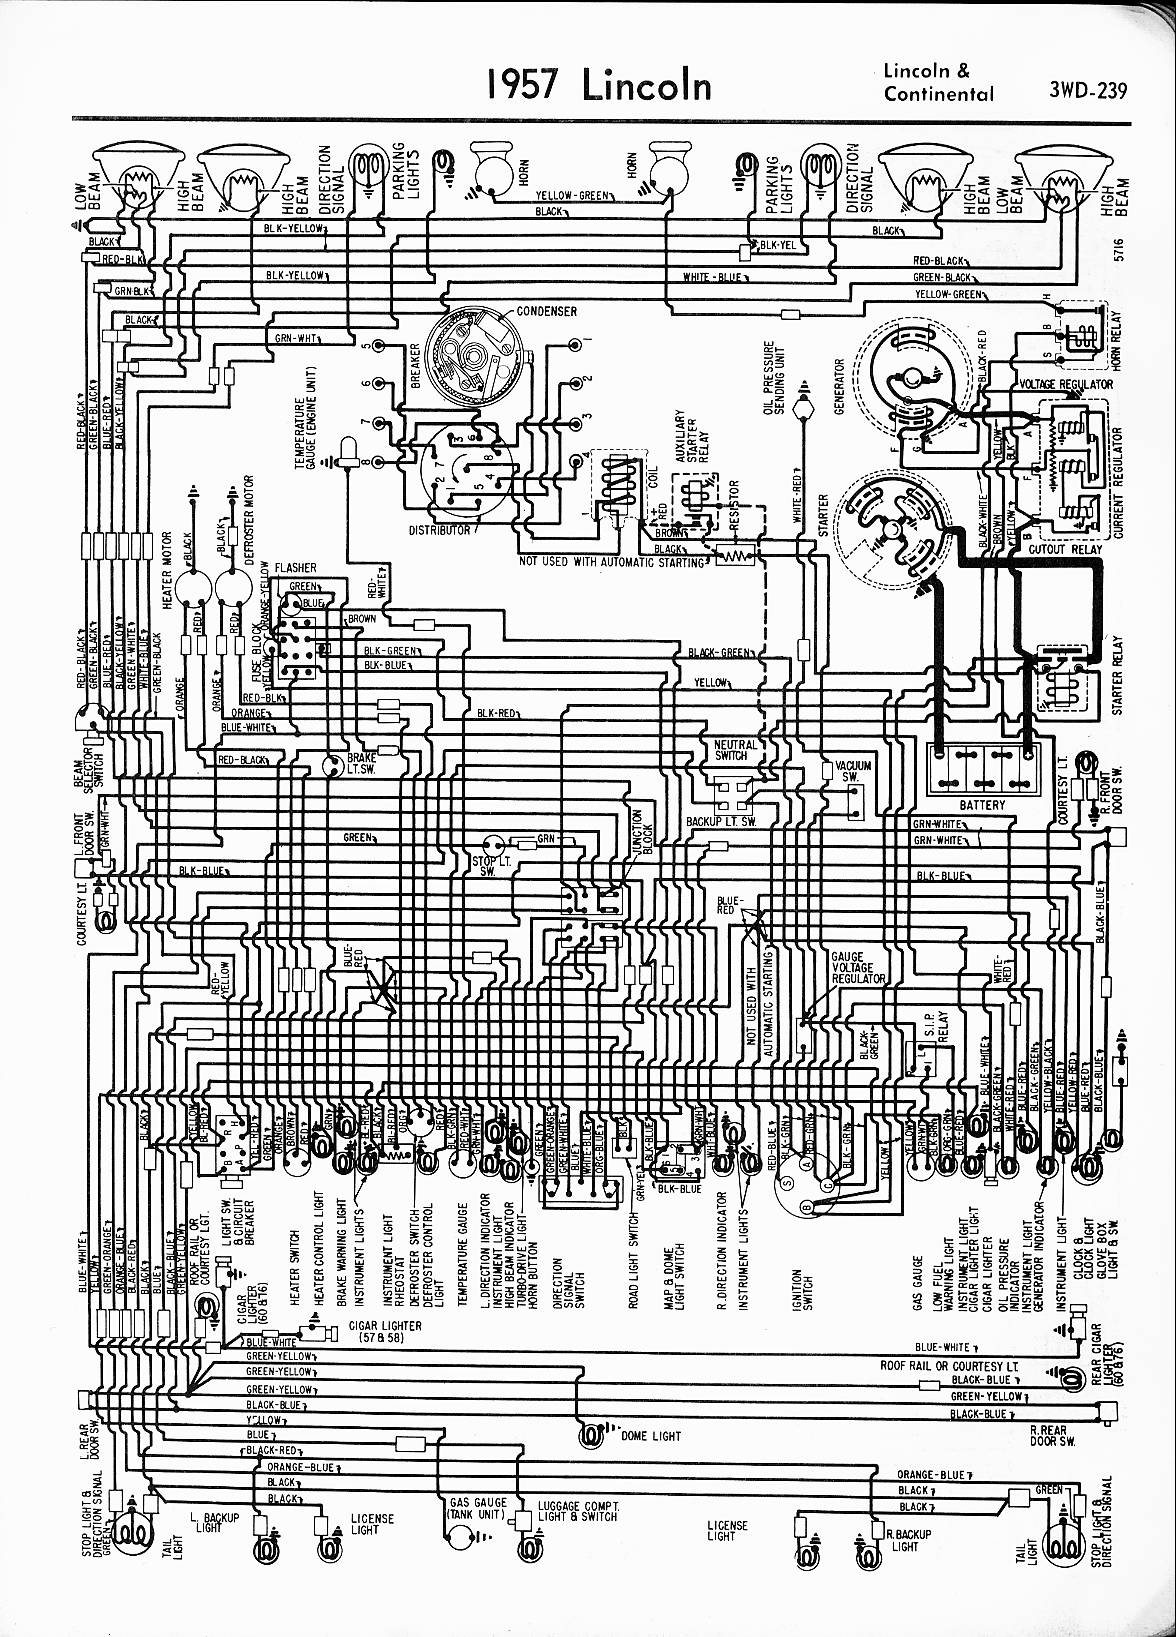 MWireLin_Lin57_z3wd 239z_001 lincoln wiring diagrams 1949 lincoln wiring diagram \u2022 free wiring Rear Defroster Symbol at webbmarketing.co